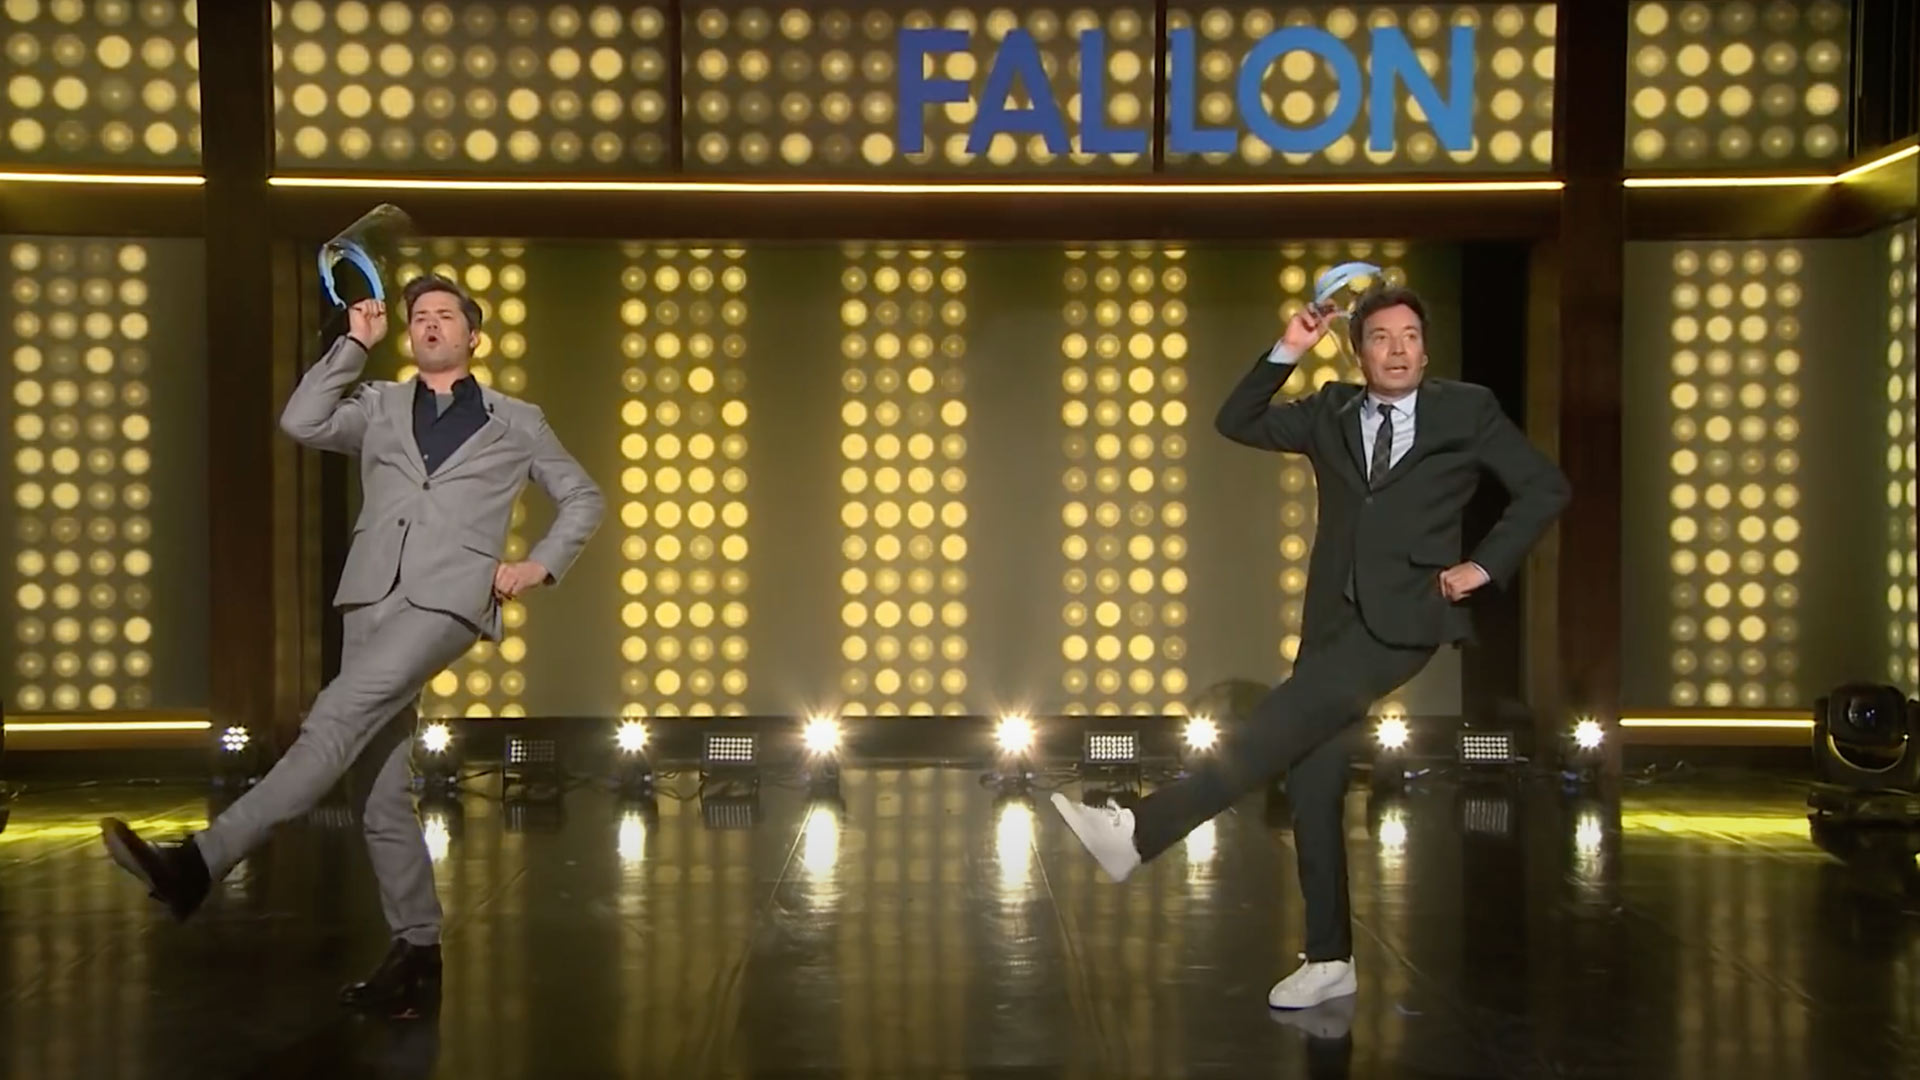 Andrew rannells and jimmy Fallon